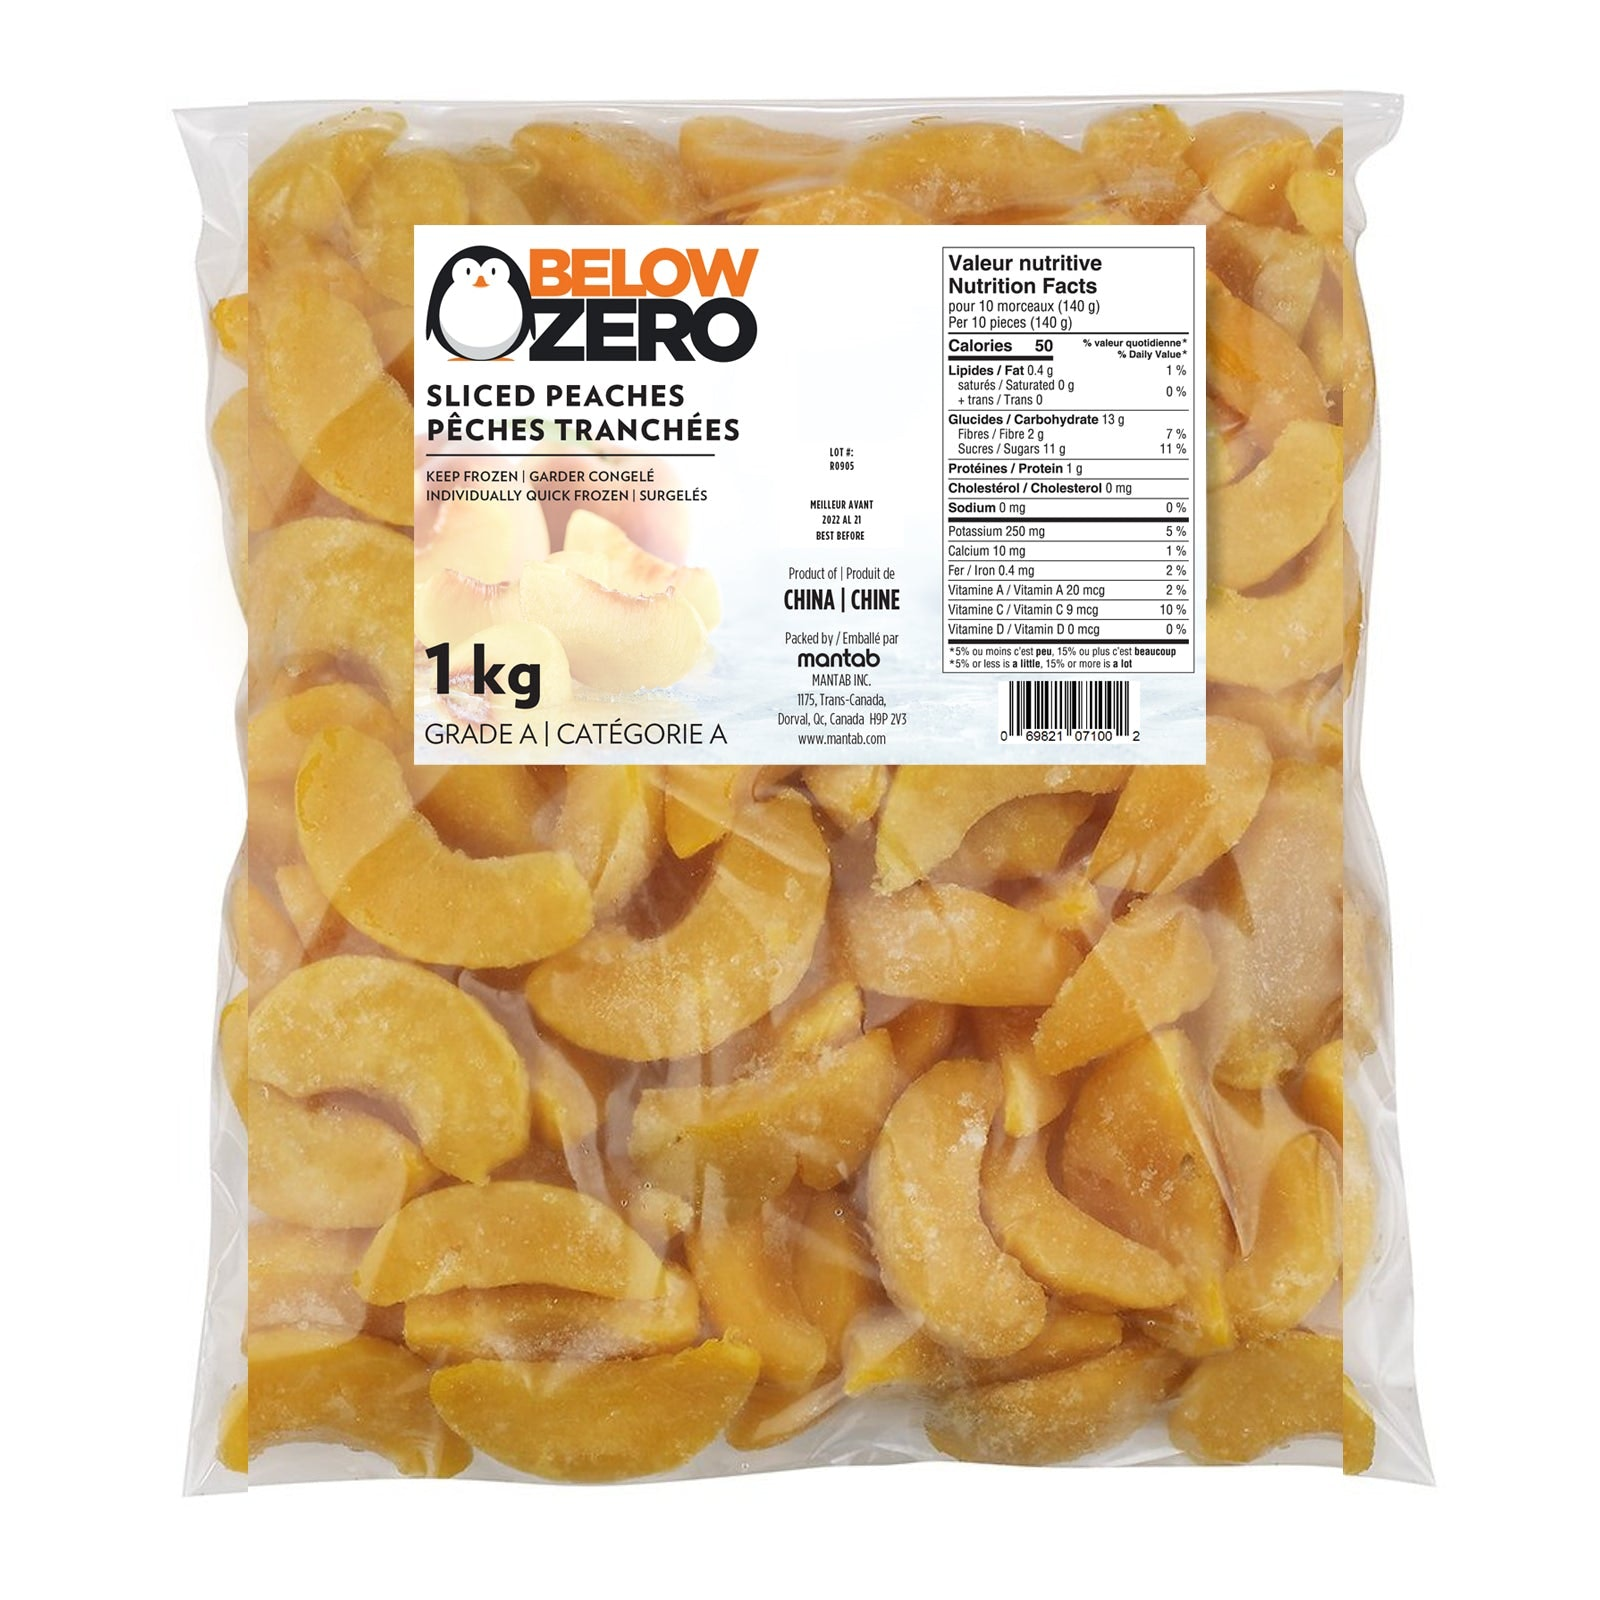 BELOW ZERO Sliced peaches